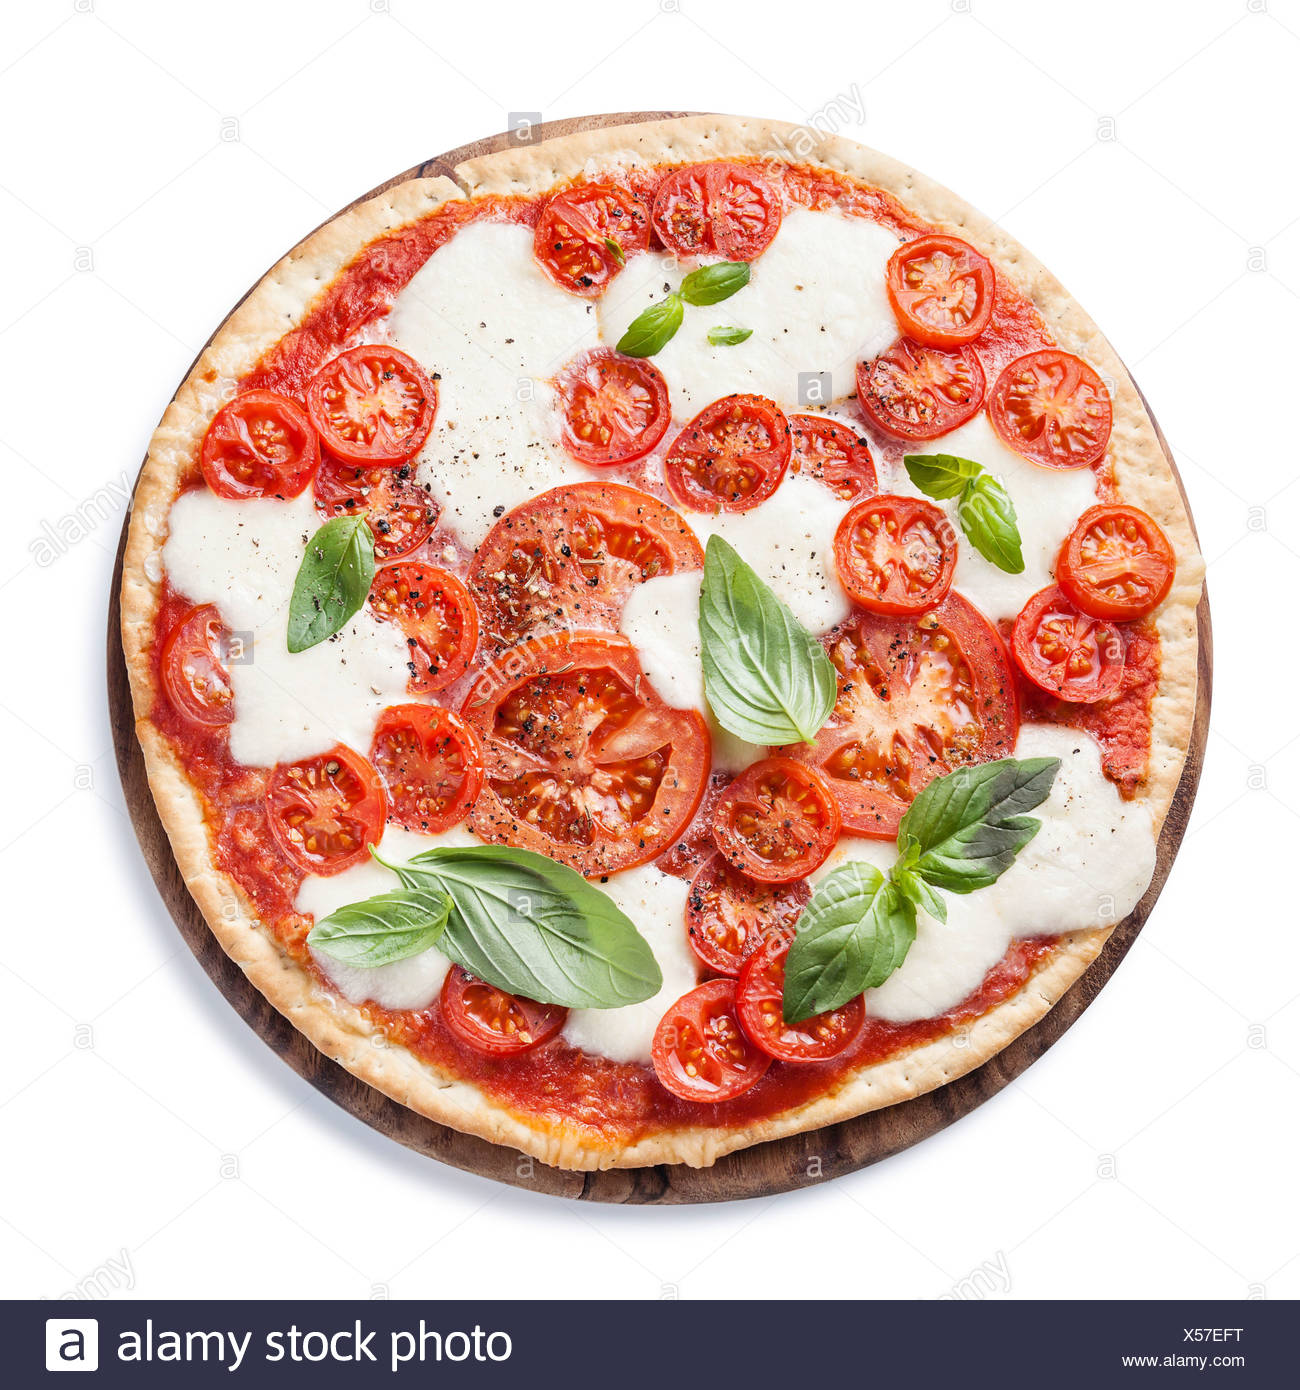 Italian pizza with tomatoes and mozzarella on white background - Stock Image